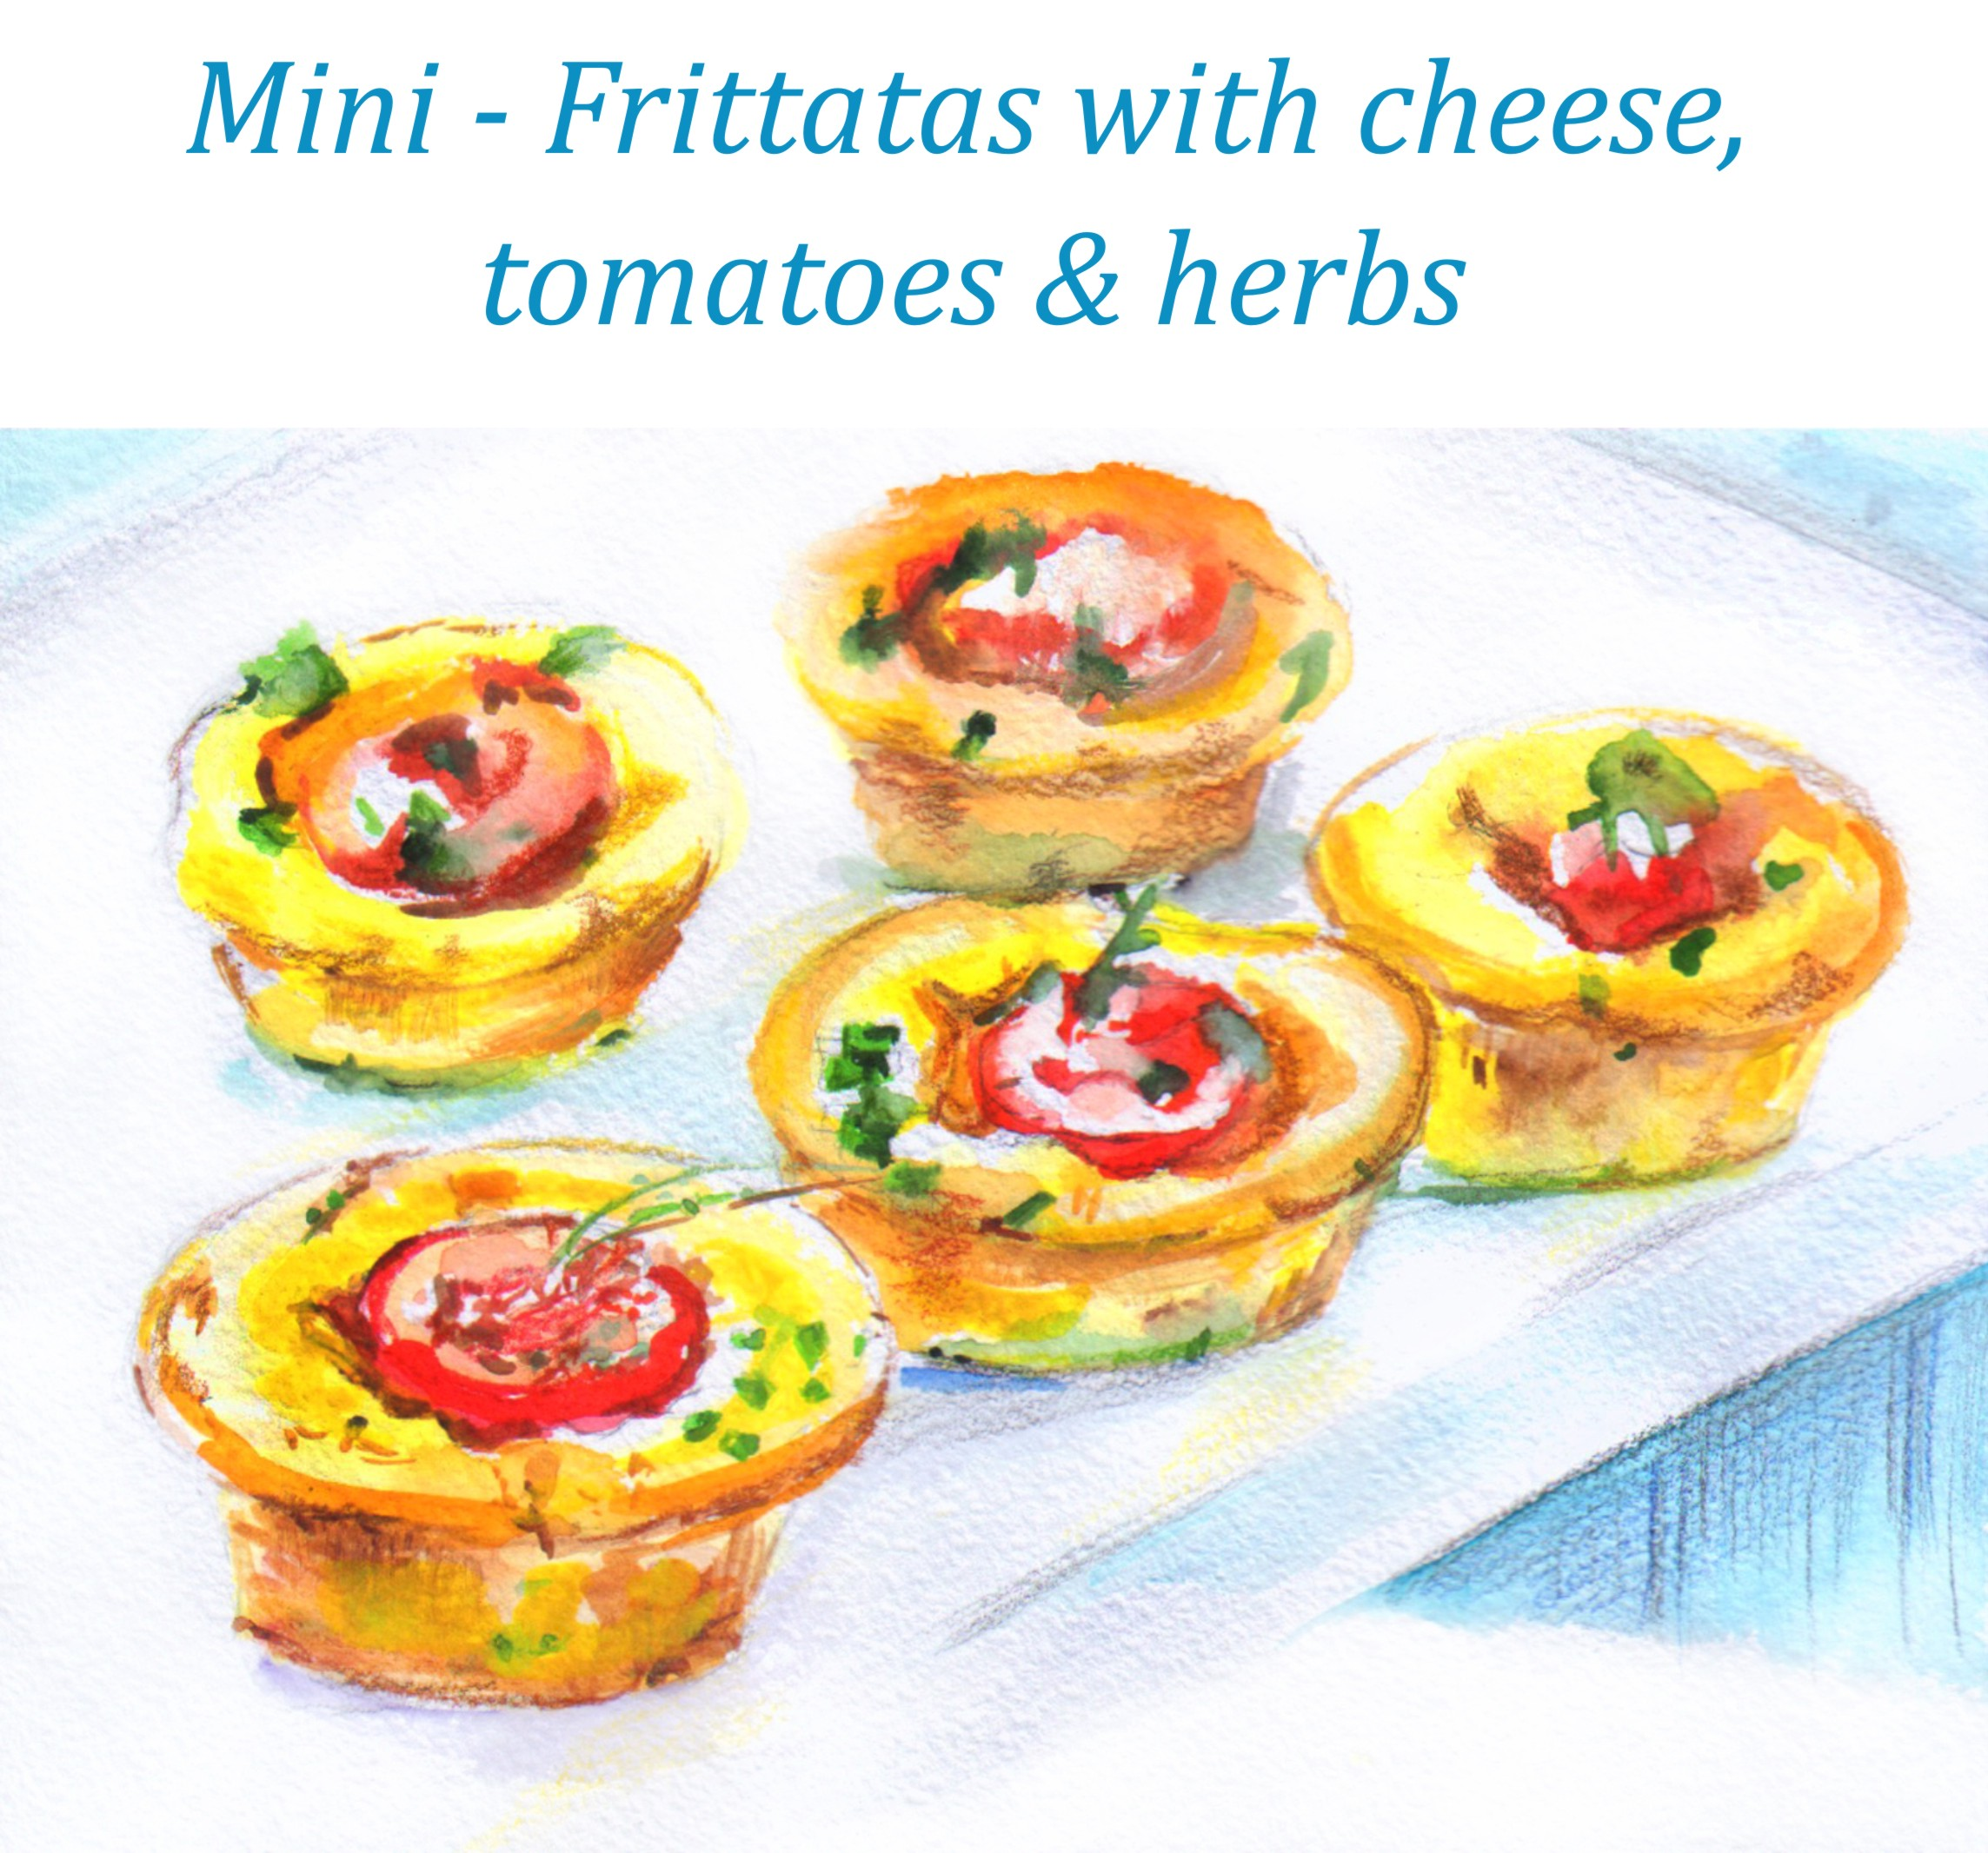 mini frittatas with cheese, tomatoes & herbs